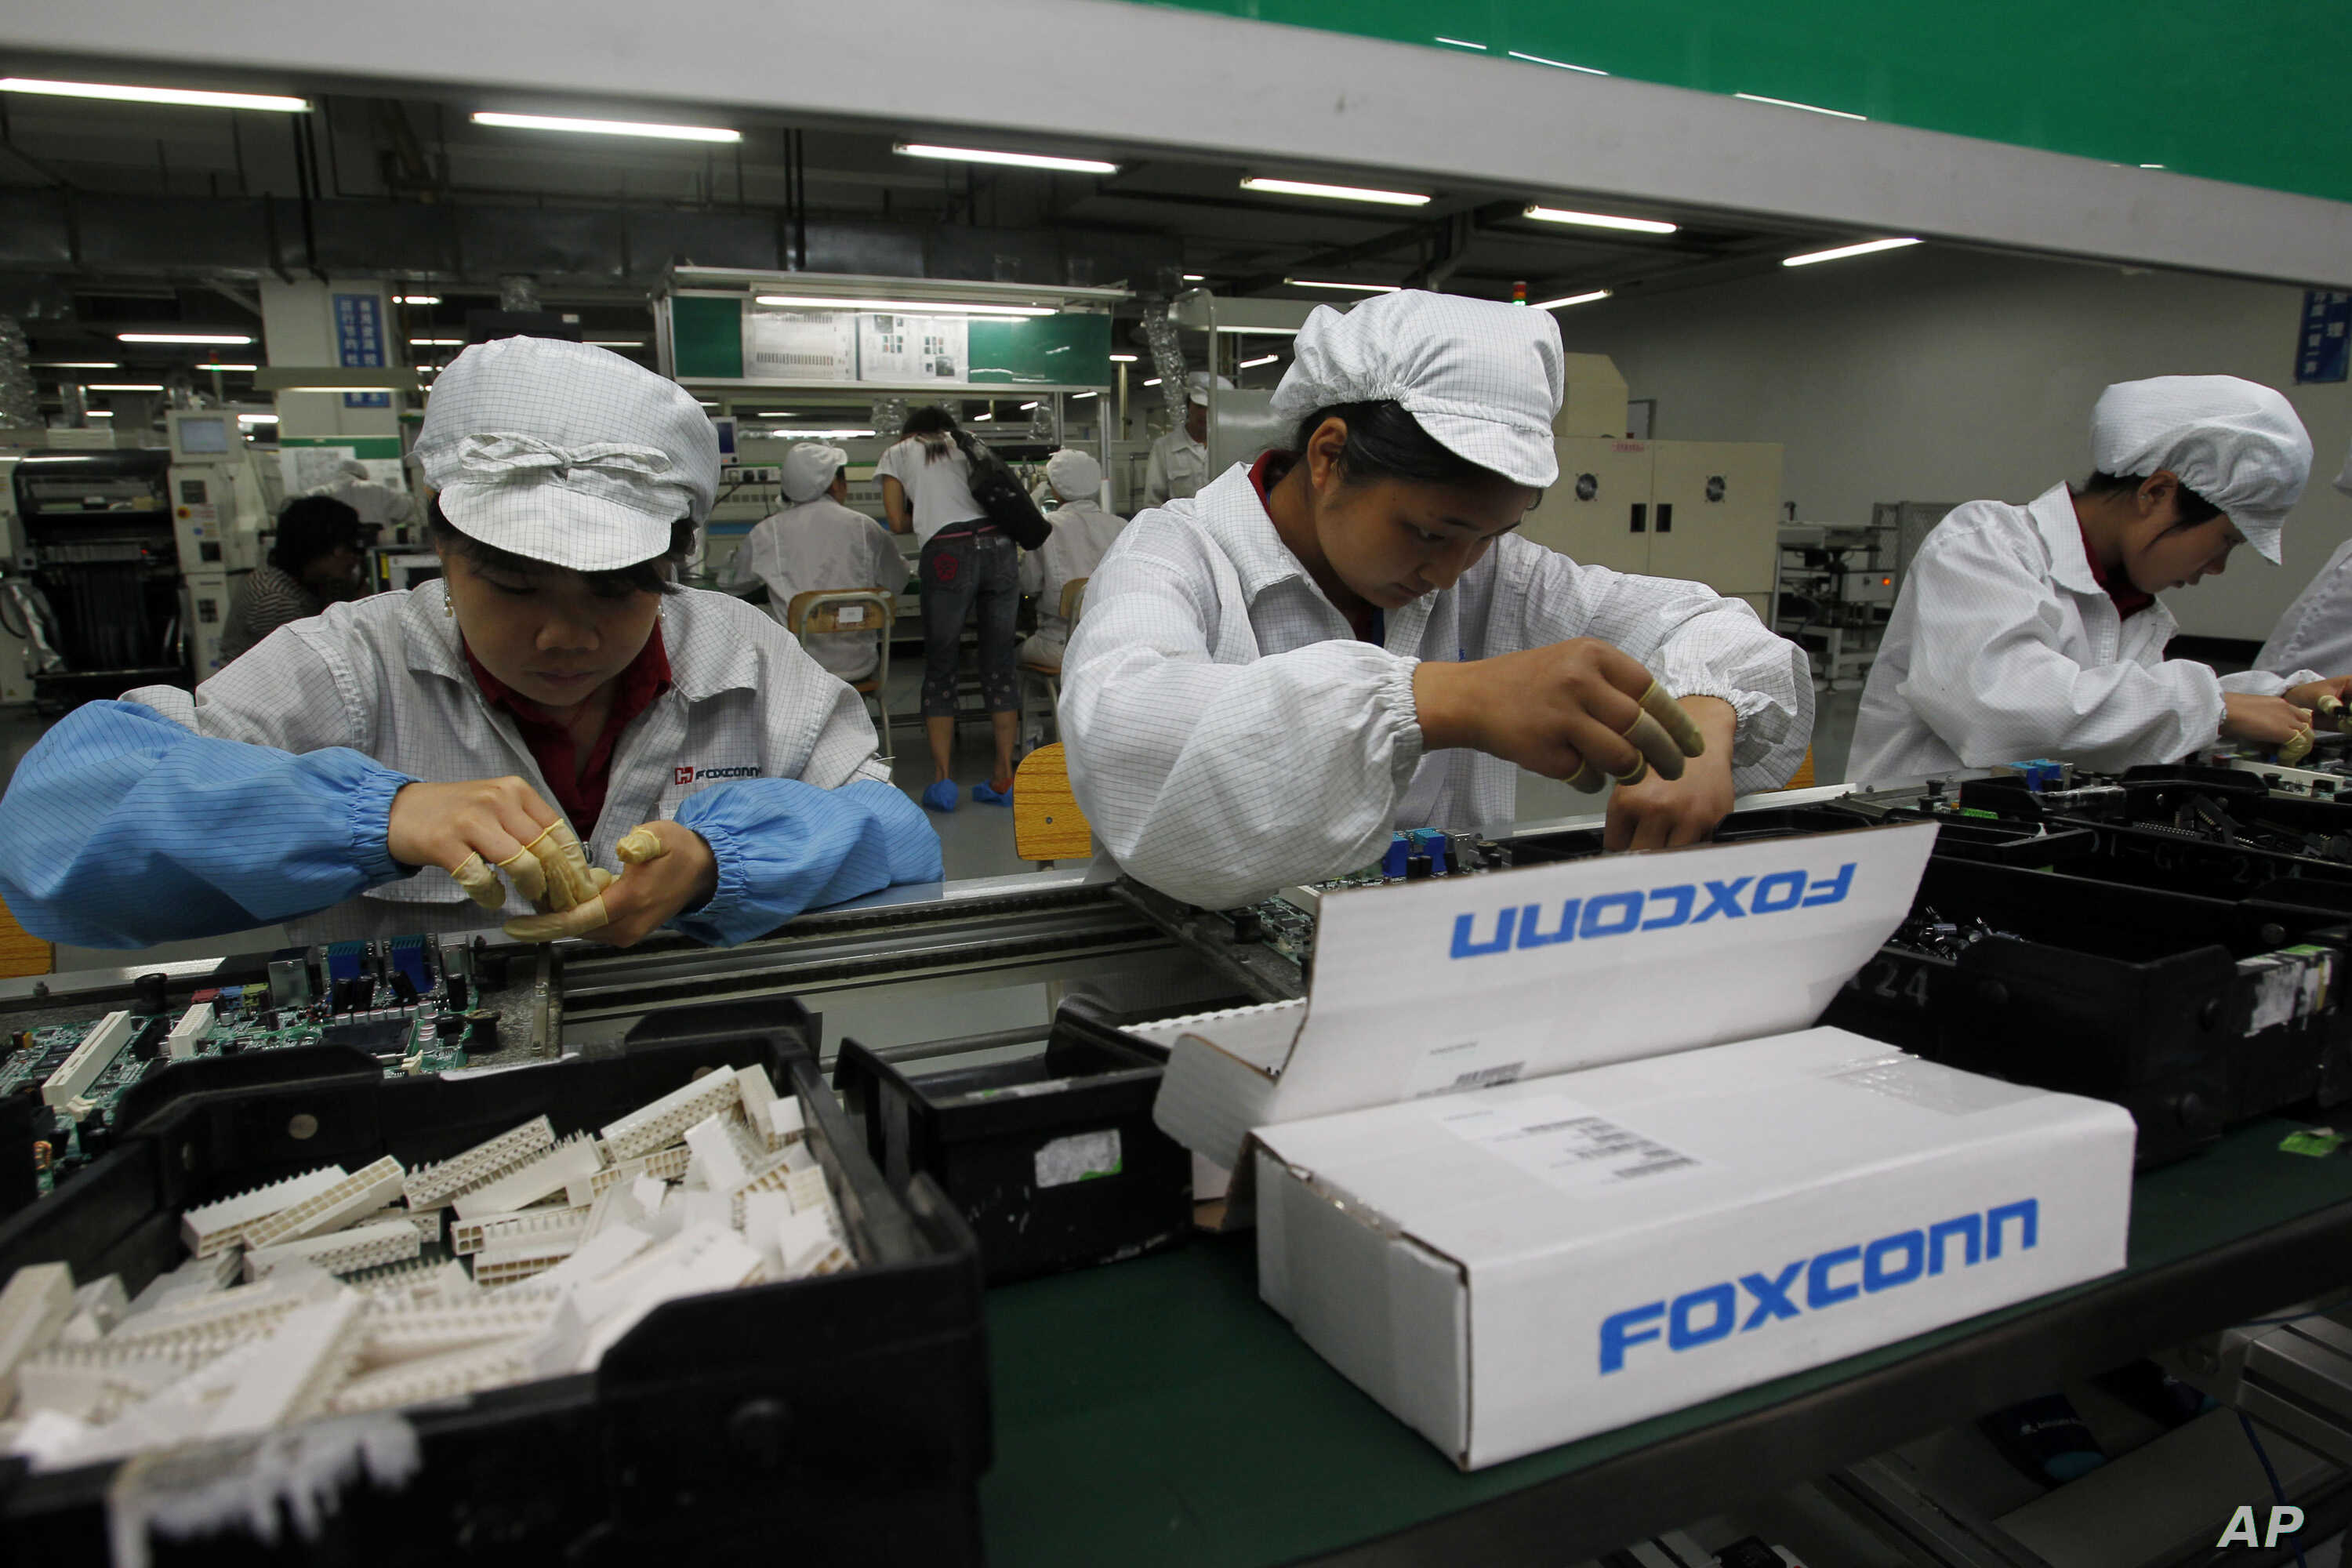 Apple Contractor Foxconn Shifts to Robot Technology | Voice